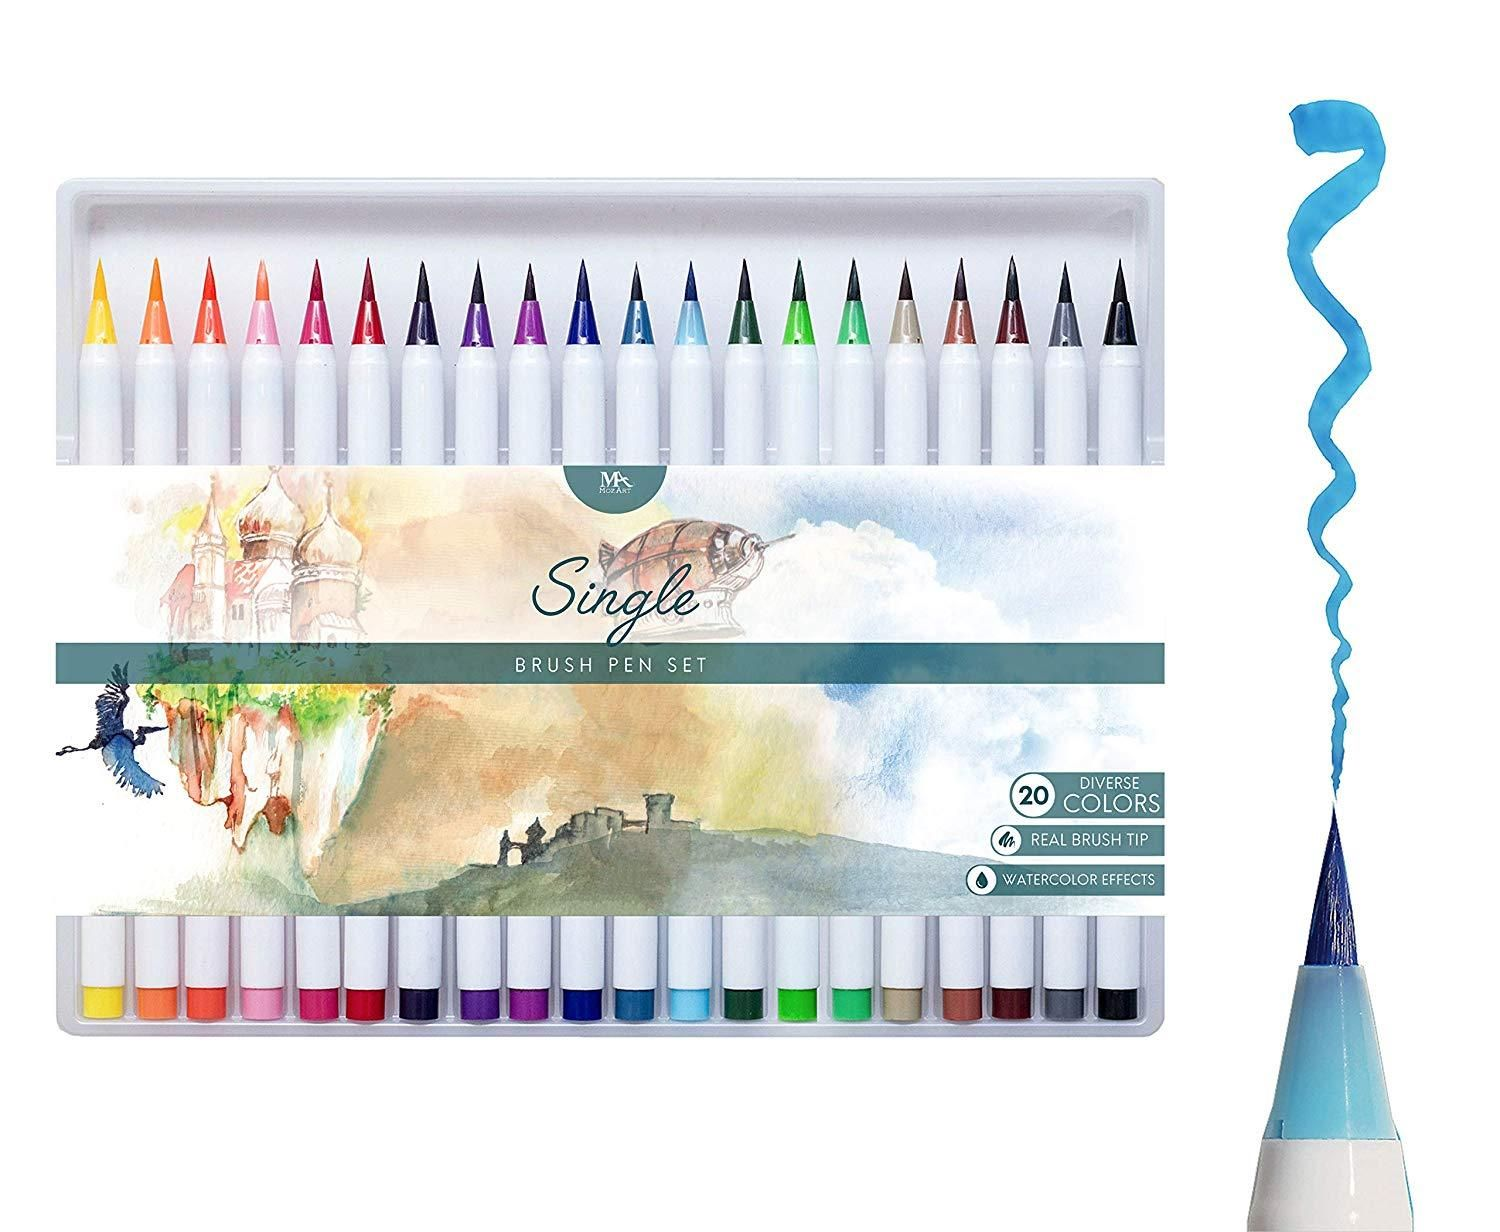 Single Brush Pens 12 Pcs Brush Pen Pen Sets Watercolor Effects